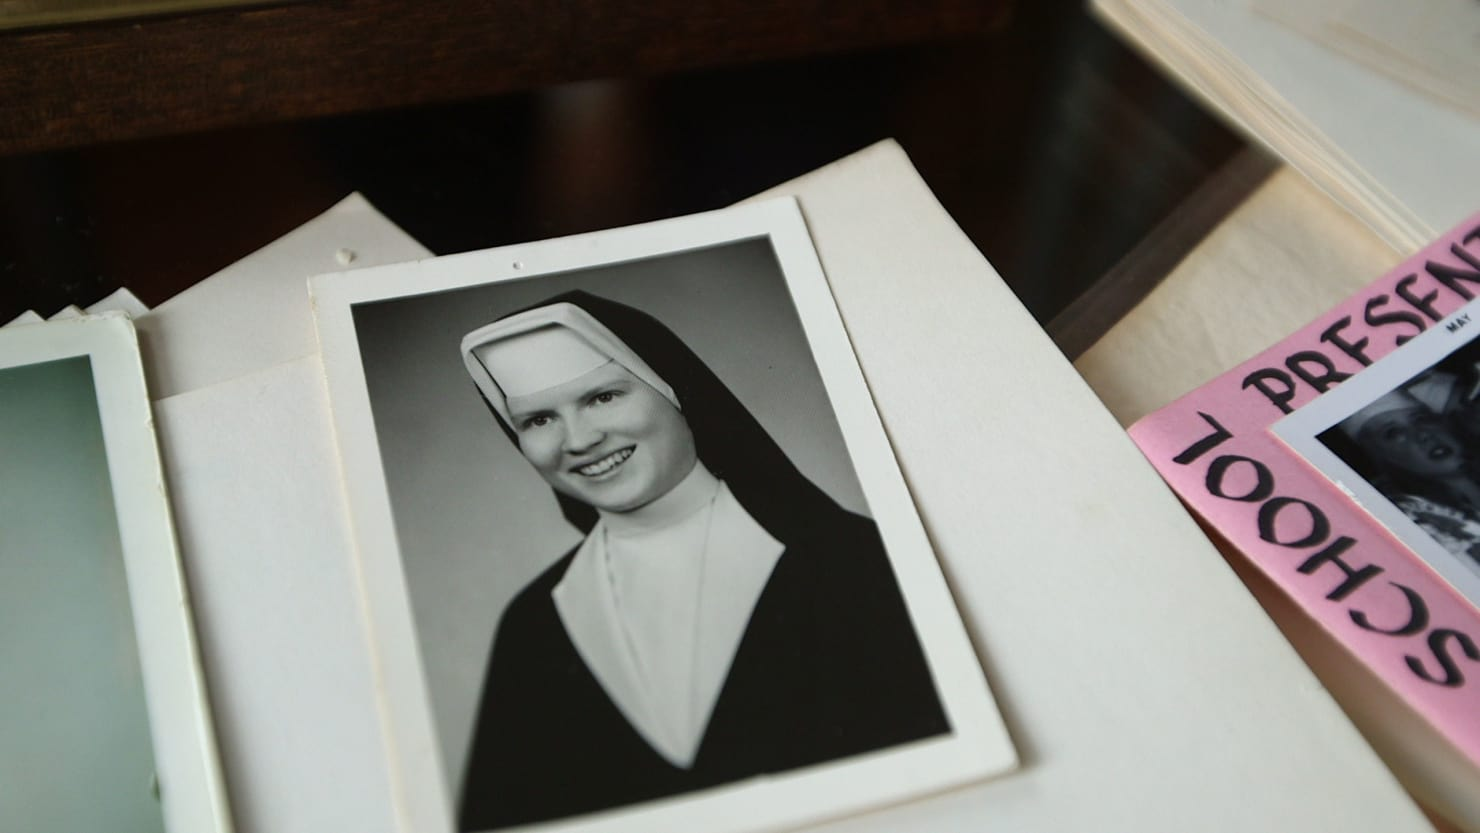 The Keepers  looks into the unsolved murder of Sister Cathy Cesnik in 1969. ( photo credit )